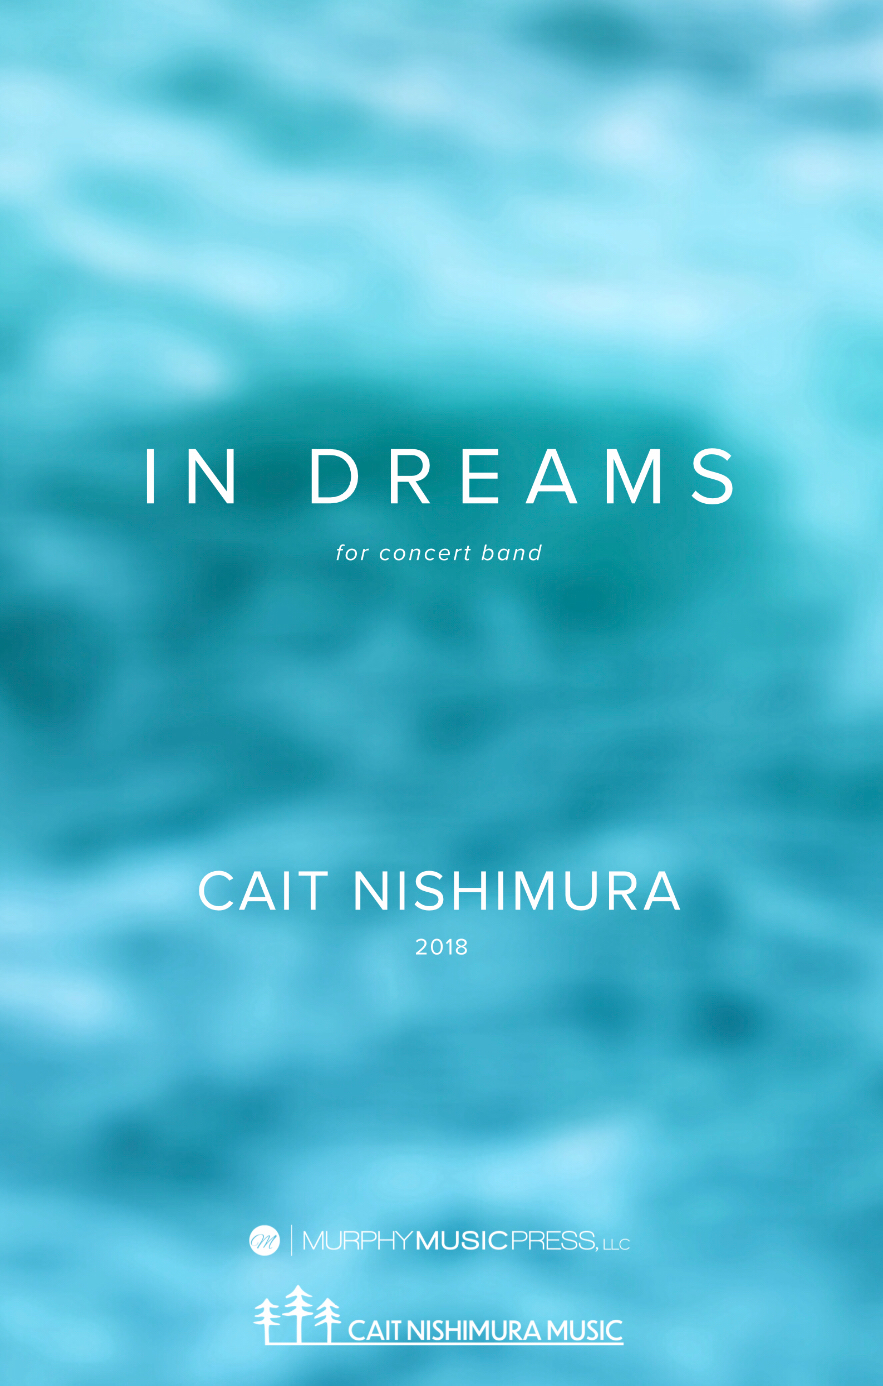 In Dreams by Cait Nishimura